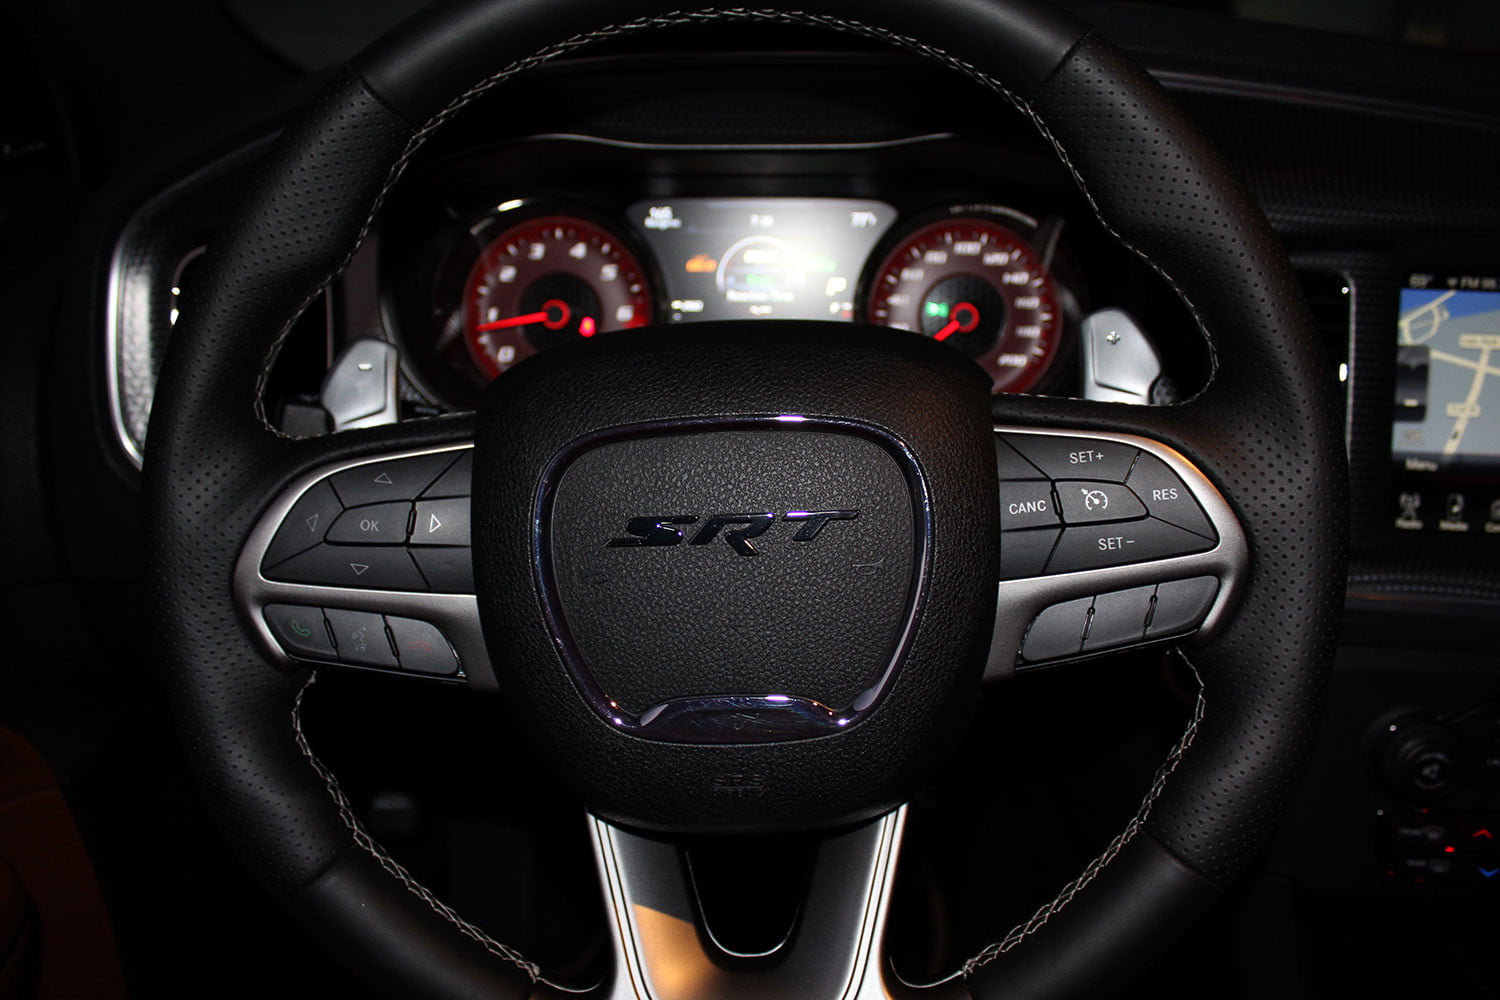 2015 Dodge Charger Srt Hellcat Review Digital Trends Cat Steering Wheel